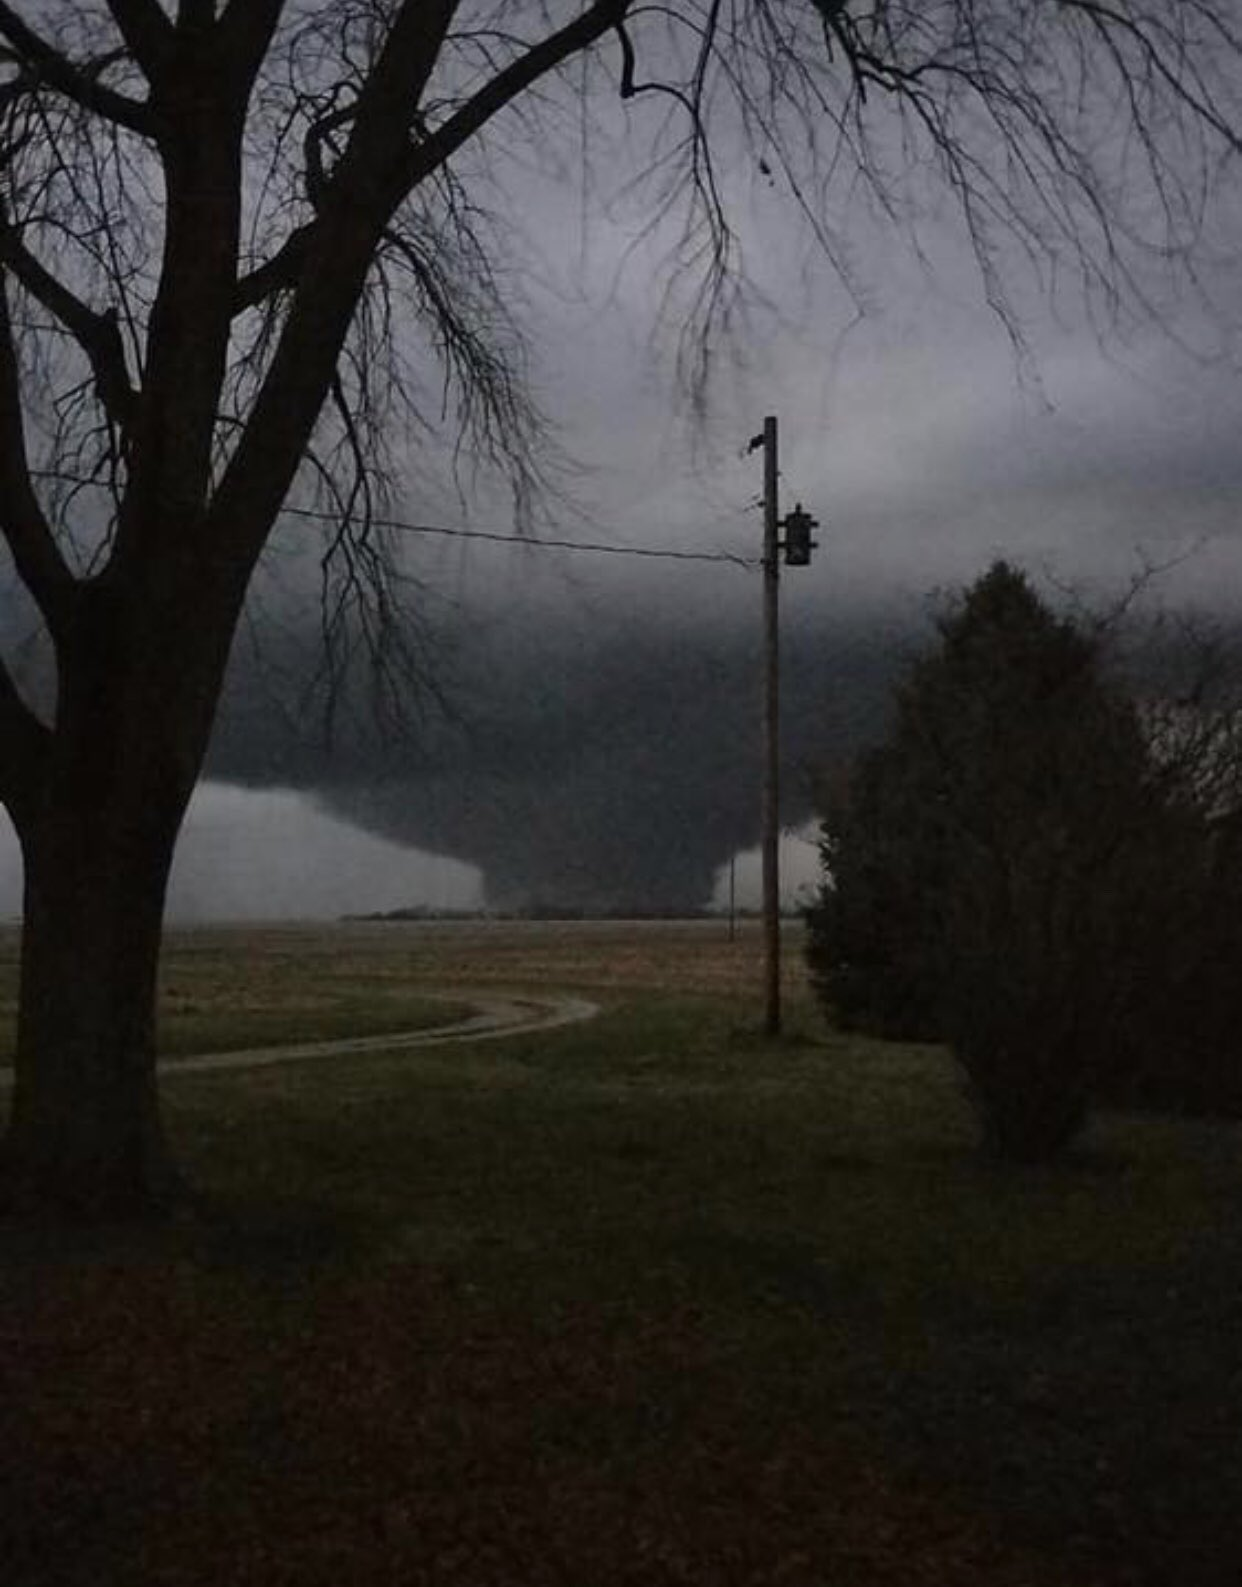 Tornado near Taylorville. Photo by Robert Wolfe.